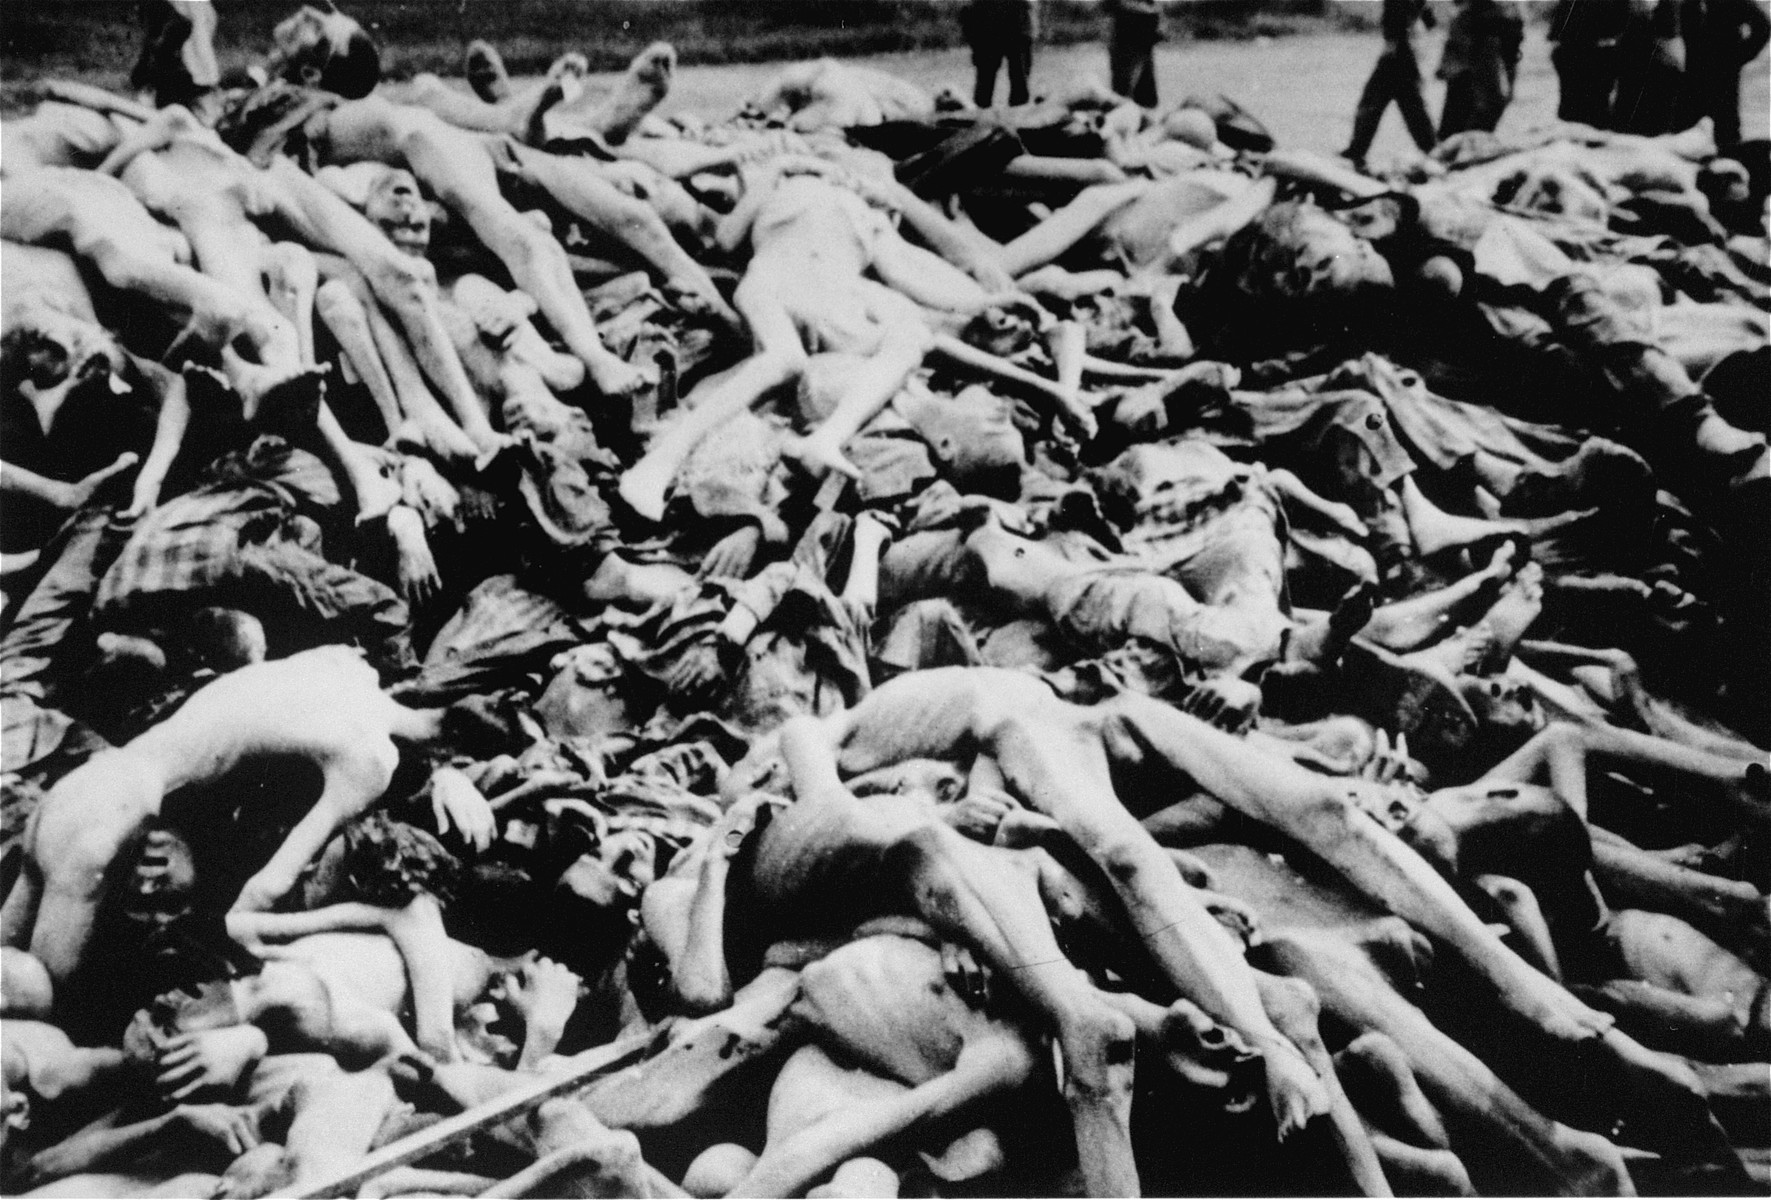 A pile of corpses lies on the ground in the newly liberated Dachau concentration camp.